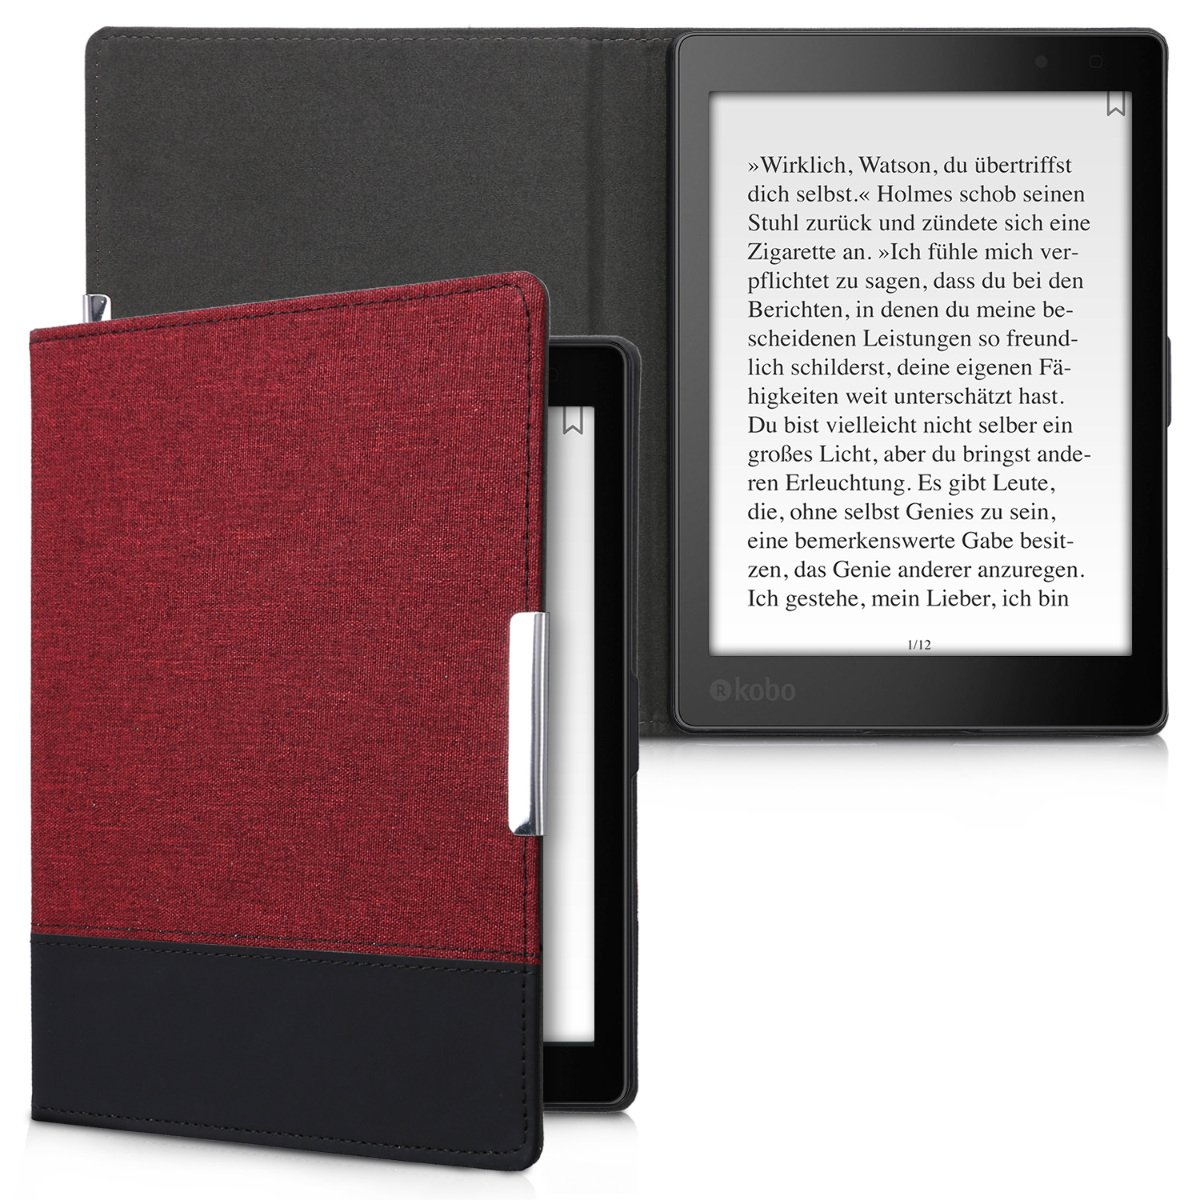 kwmobile Case for Kobo Aura ONE - PU Leather and Canvas Protective e-Reader Cover Folio Case - dark red black